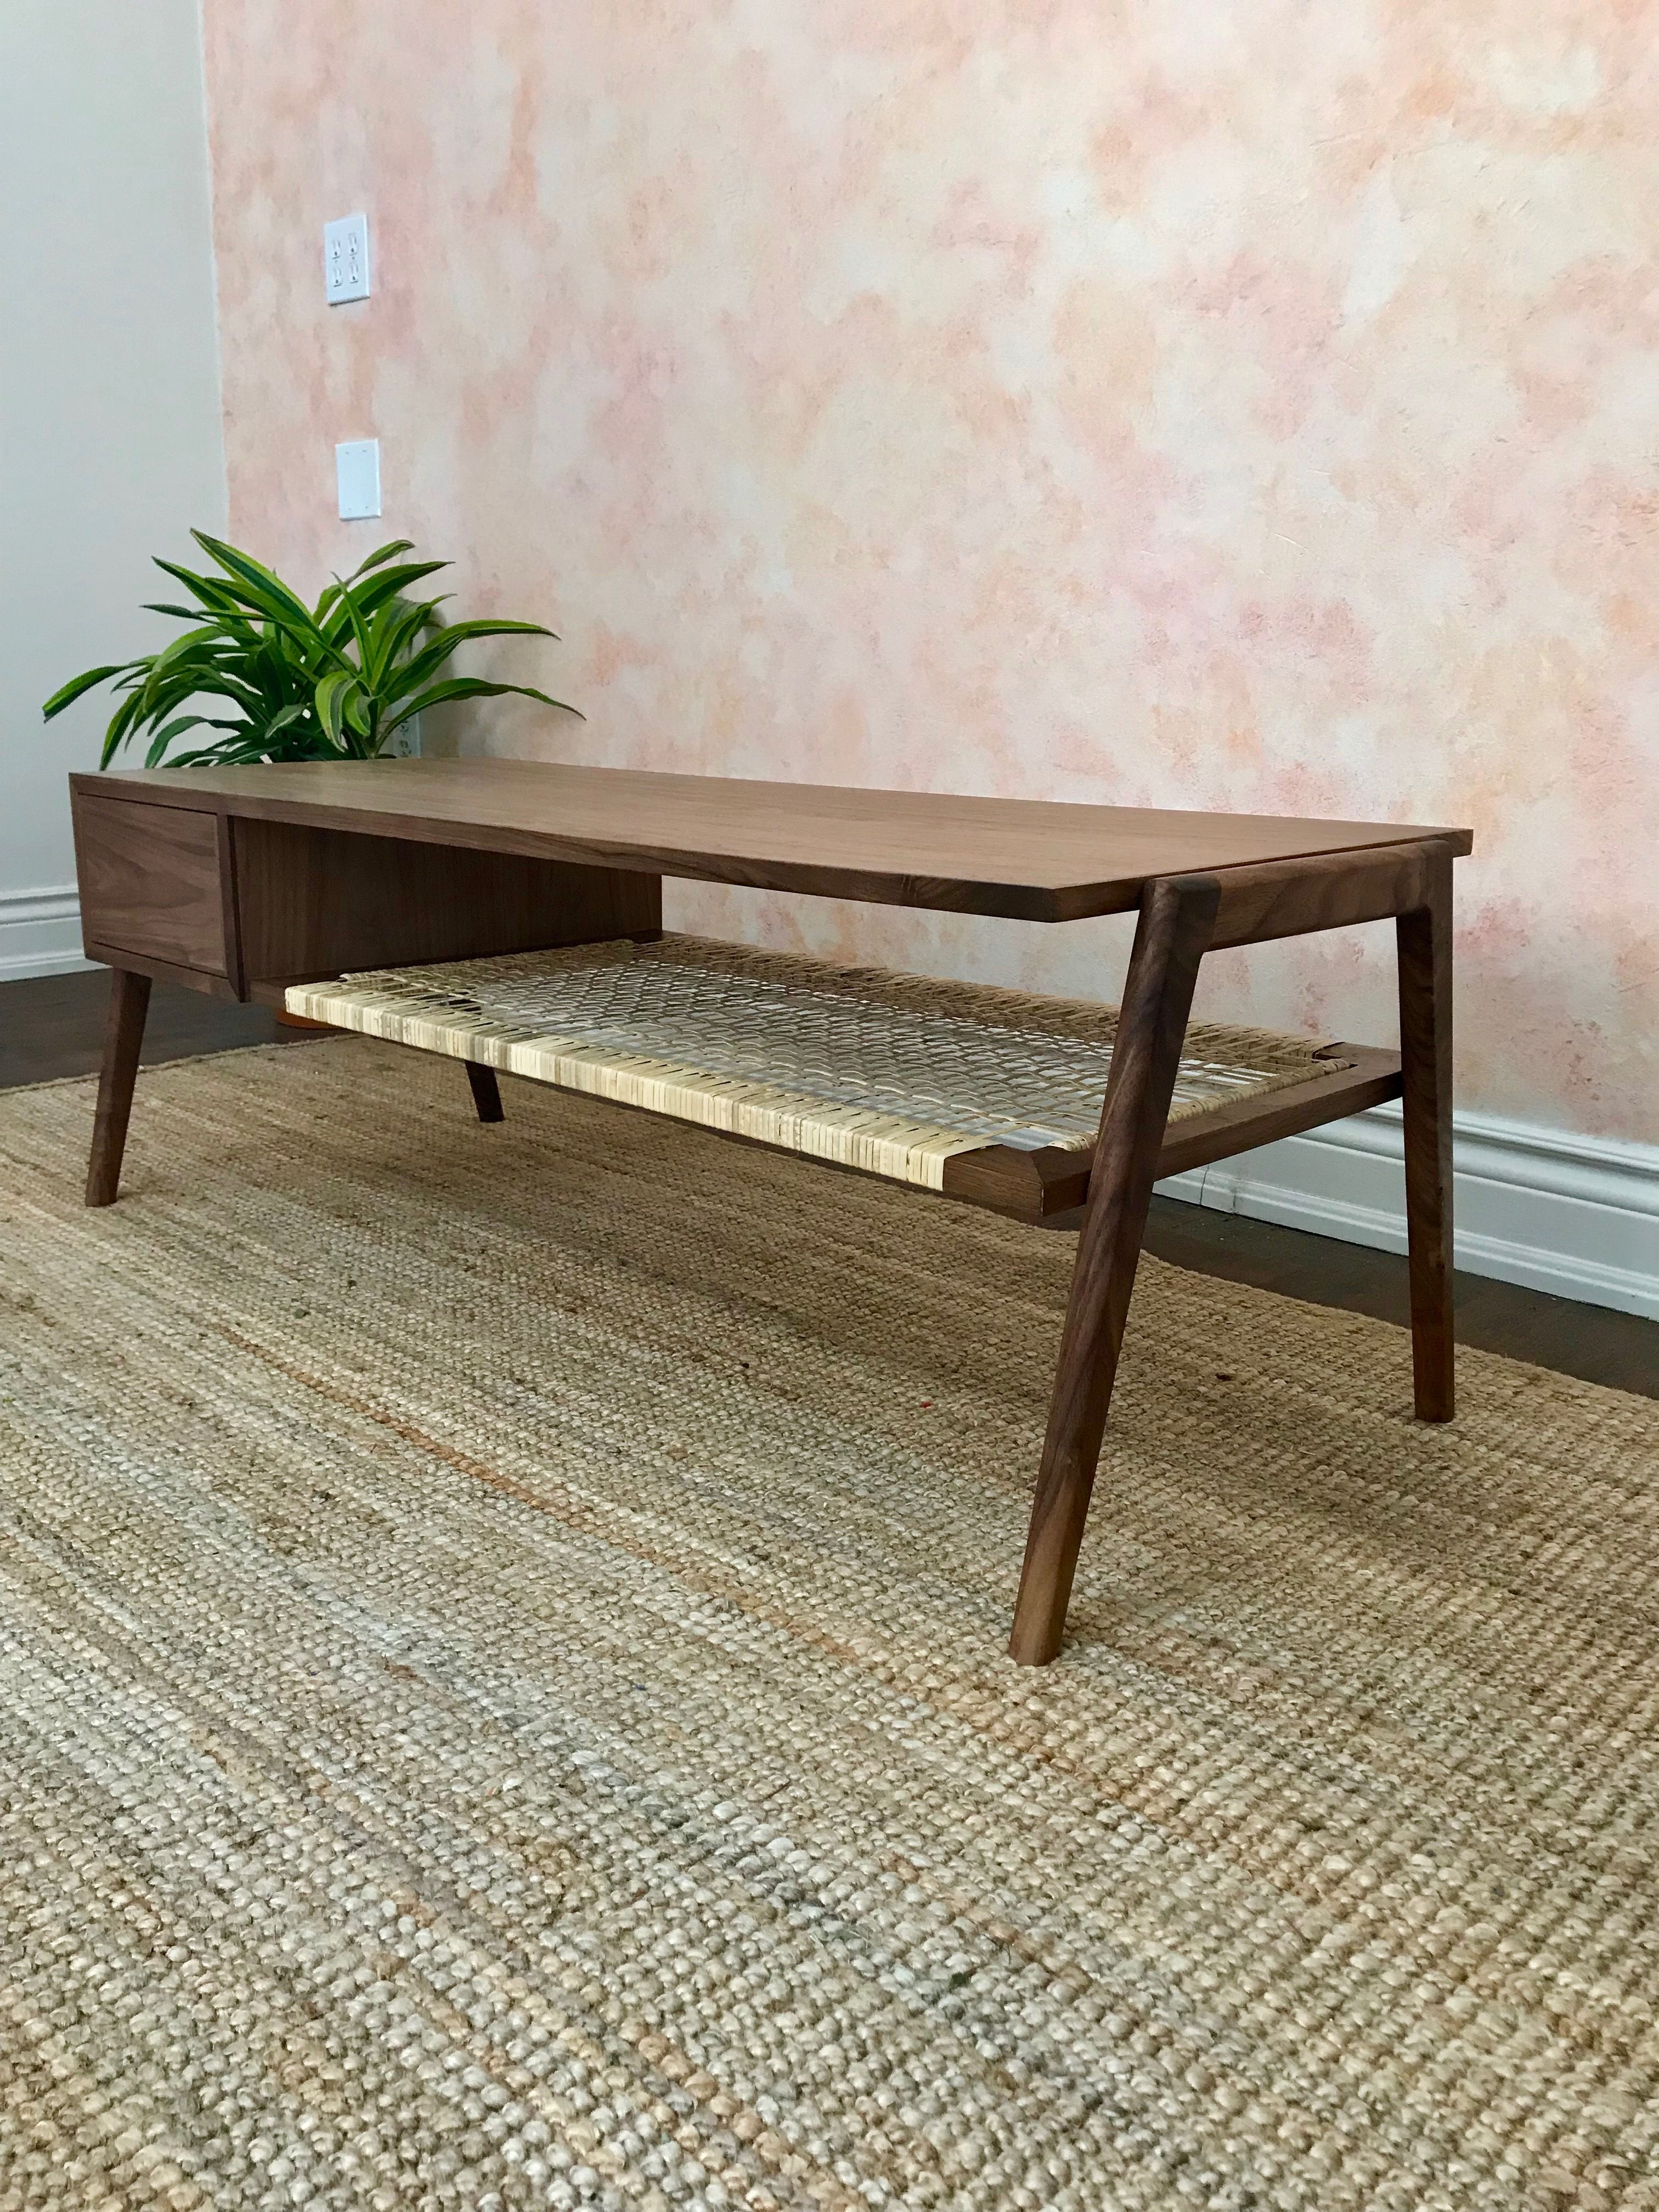 Walnut And Cane Coffee Table I Recently Completed Click To See The Diy For This And Projects Like It Coffee Table Woodworking Plans Wood Projects Woodworking